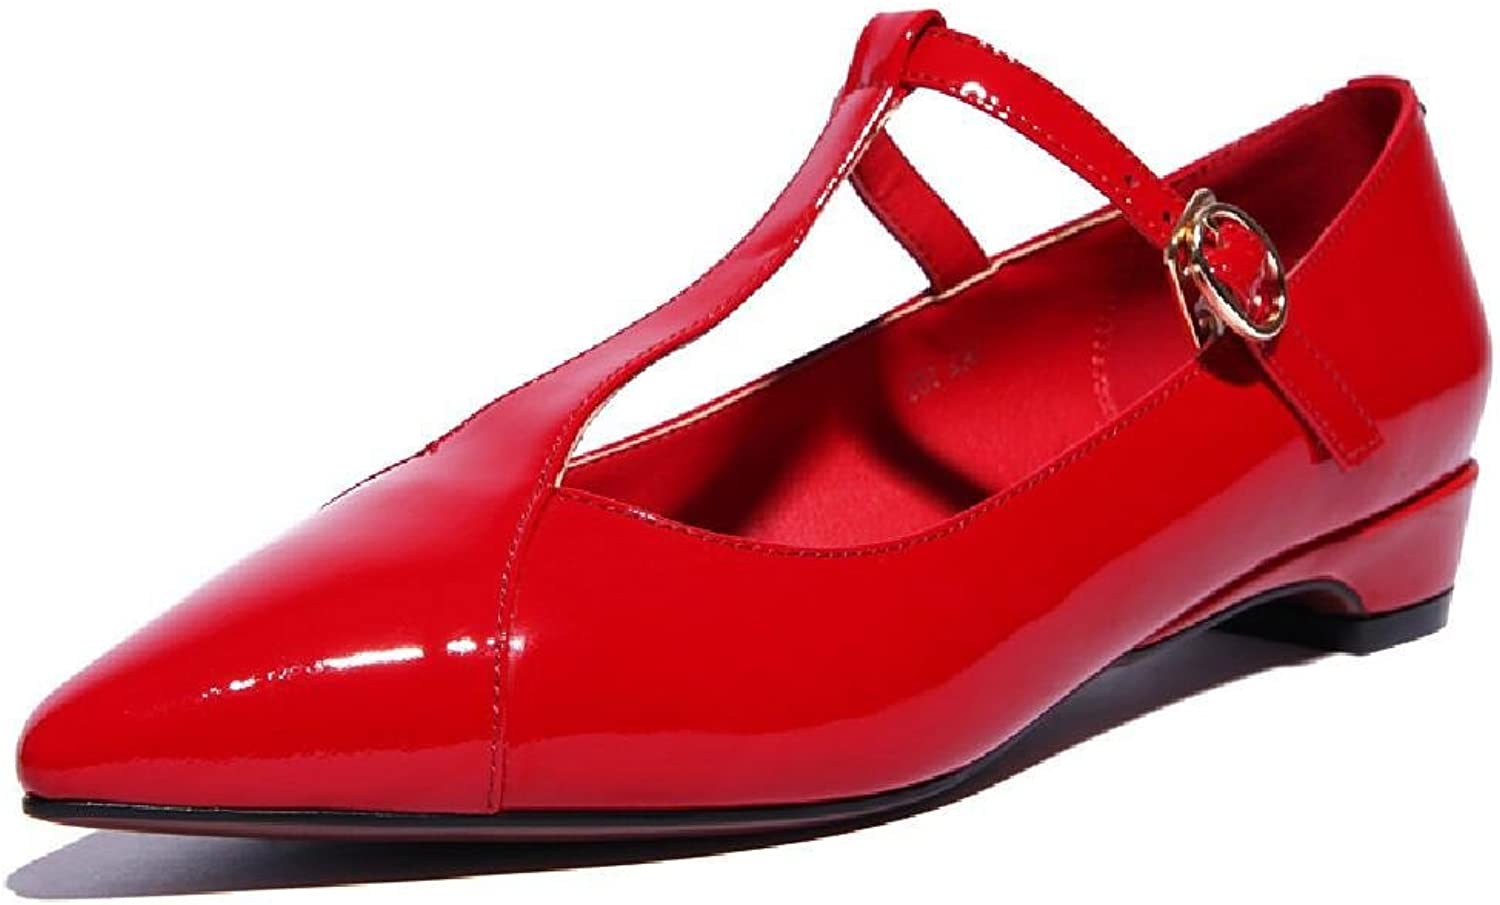 MEIREN European and American high-end fashion with new red leather low women's shoe